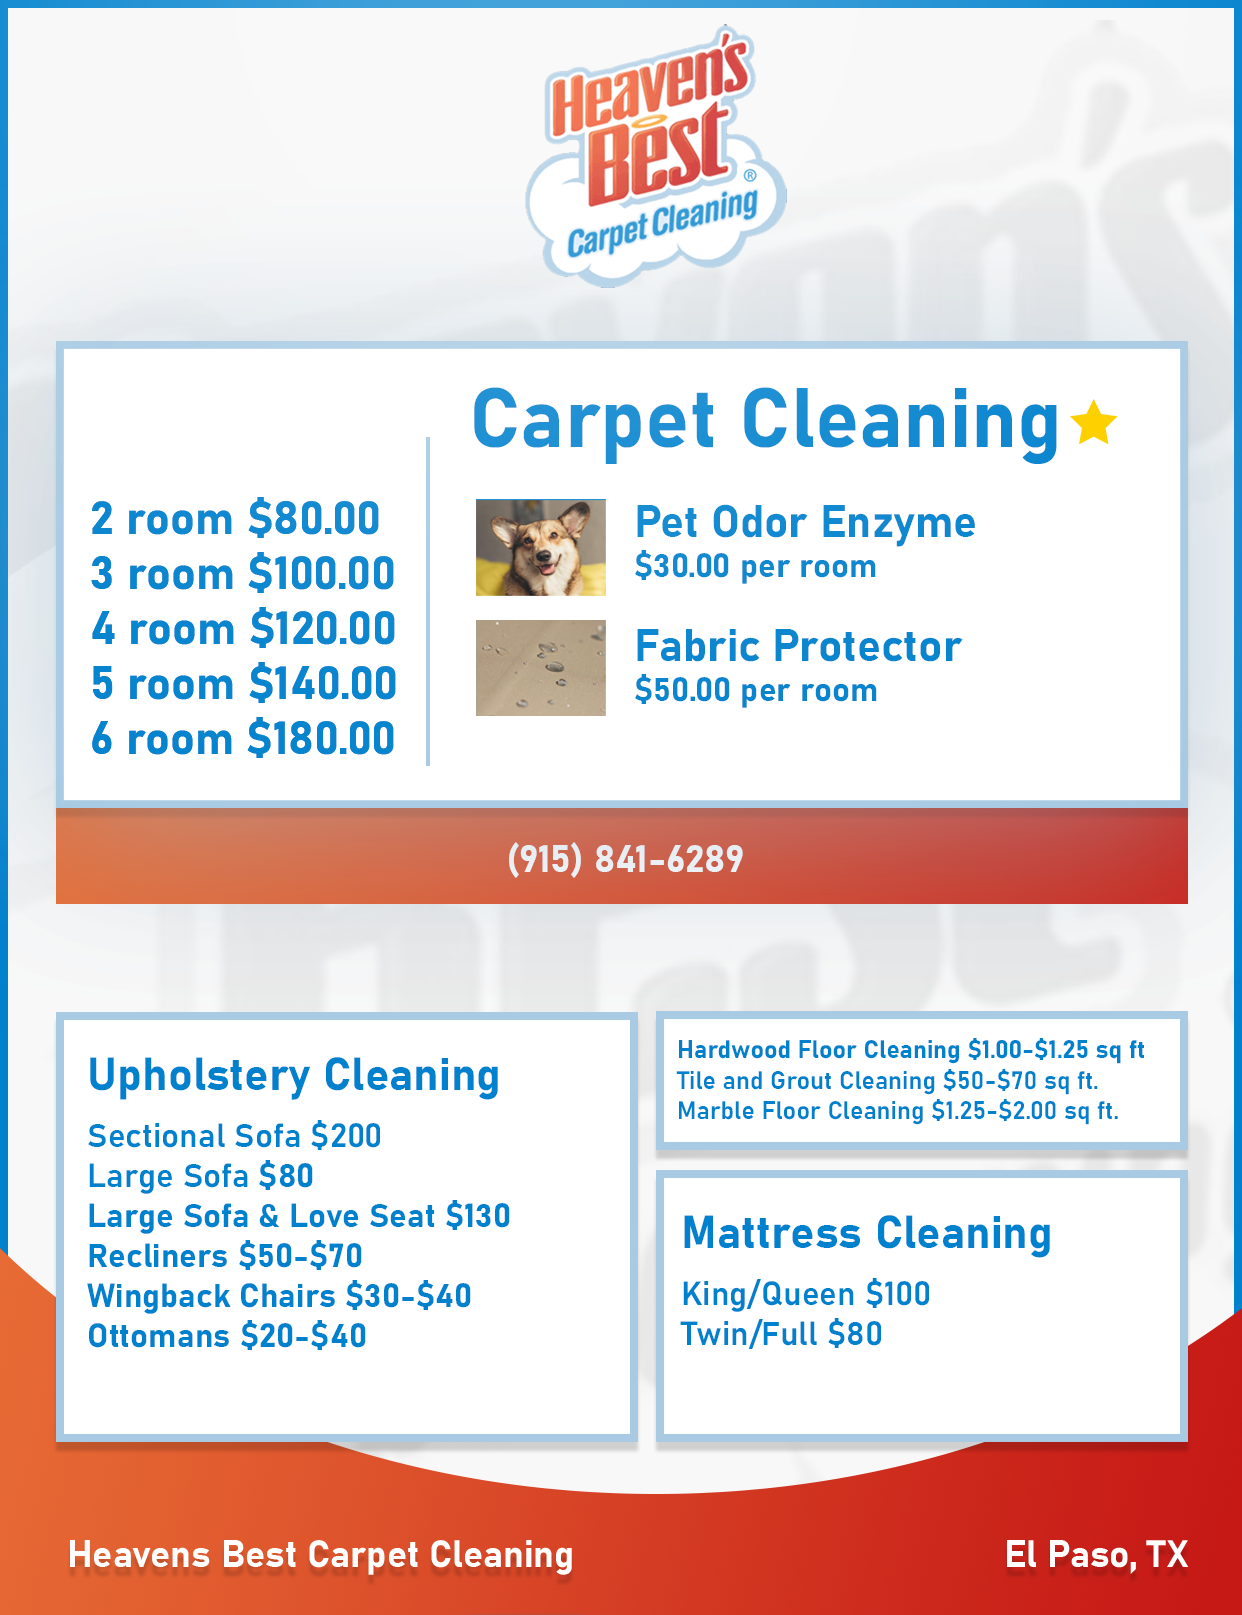 Heaven's Best Carpet Cleaning Pricing Sheet and Coupons